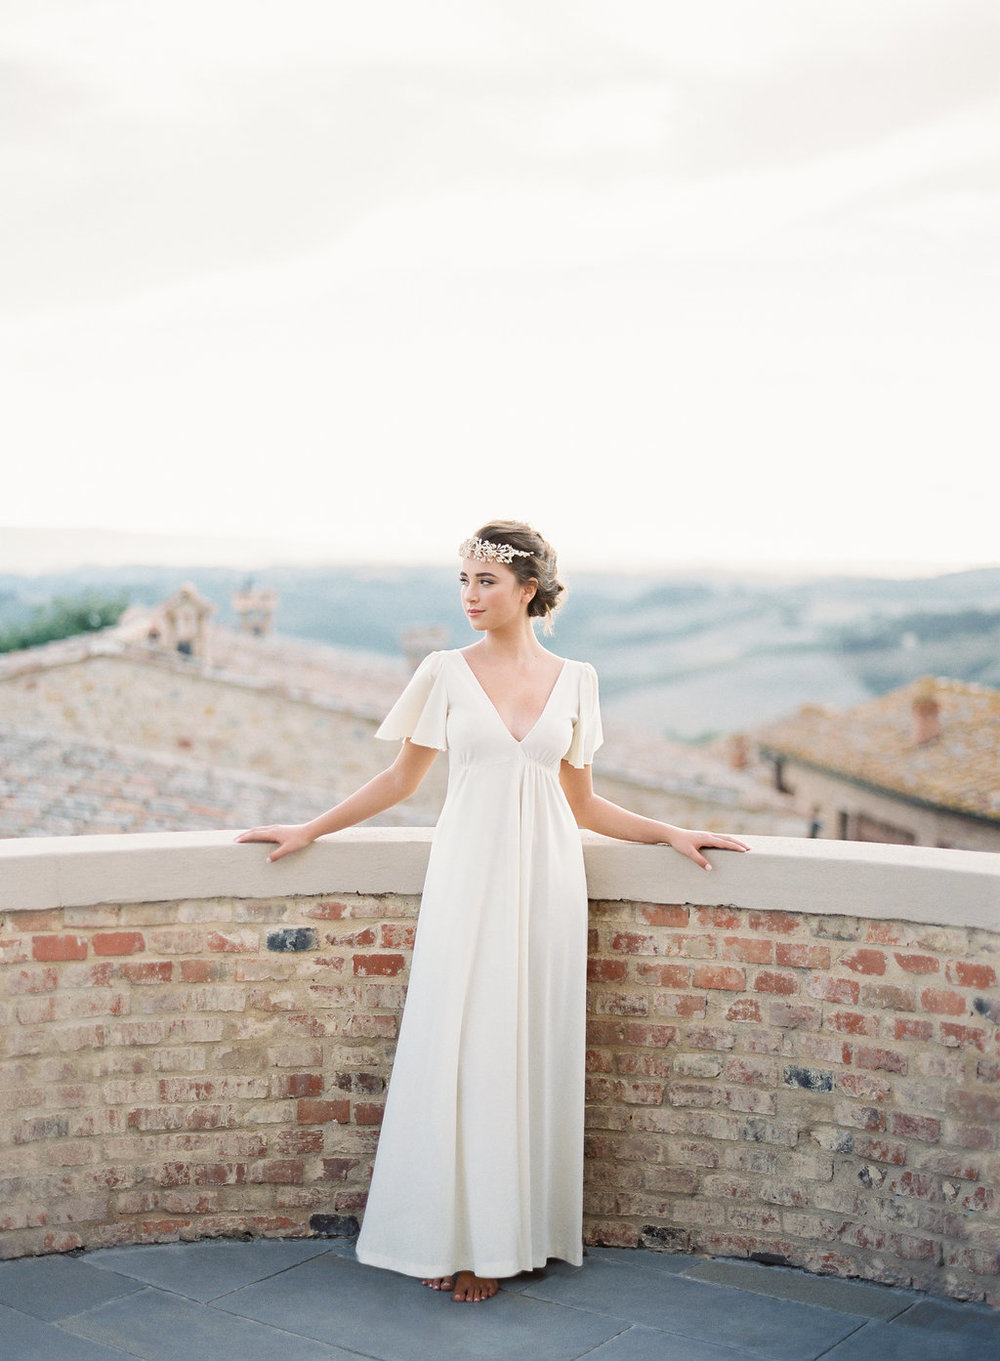 Vicki Grafton Photography | Destination Fine Art Film Photographer | Tuscany Wedding Photographer | Castelalfi Resort Italy Wedding